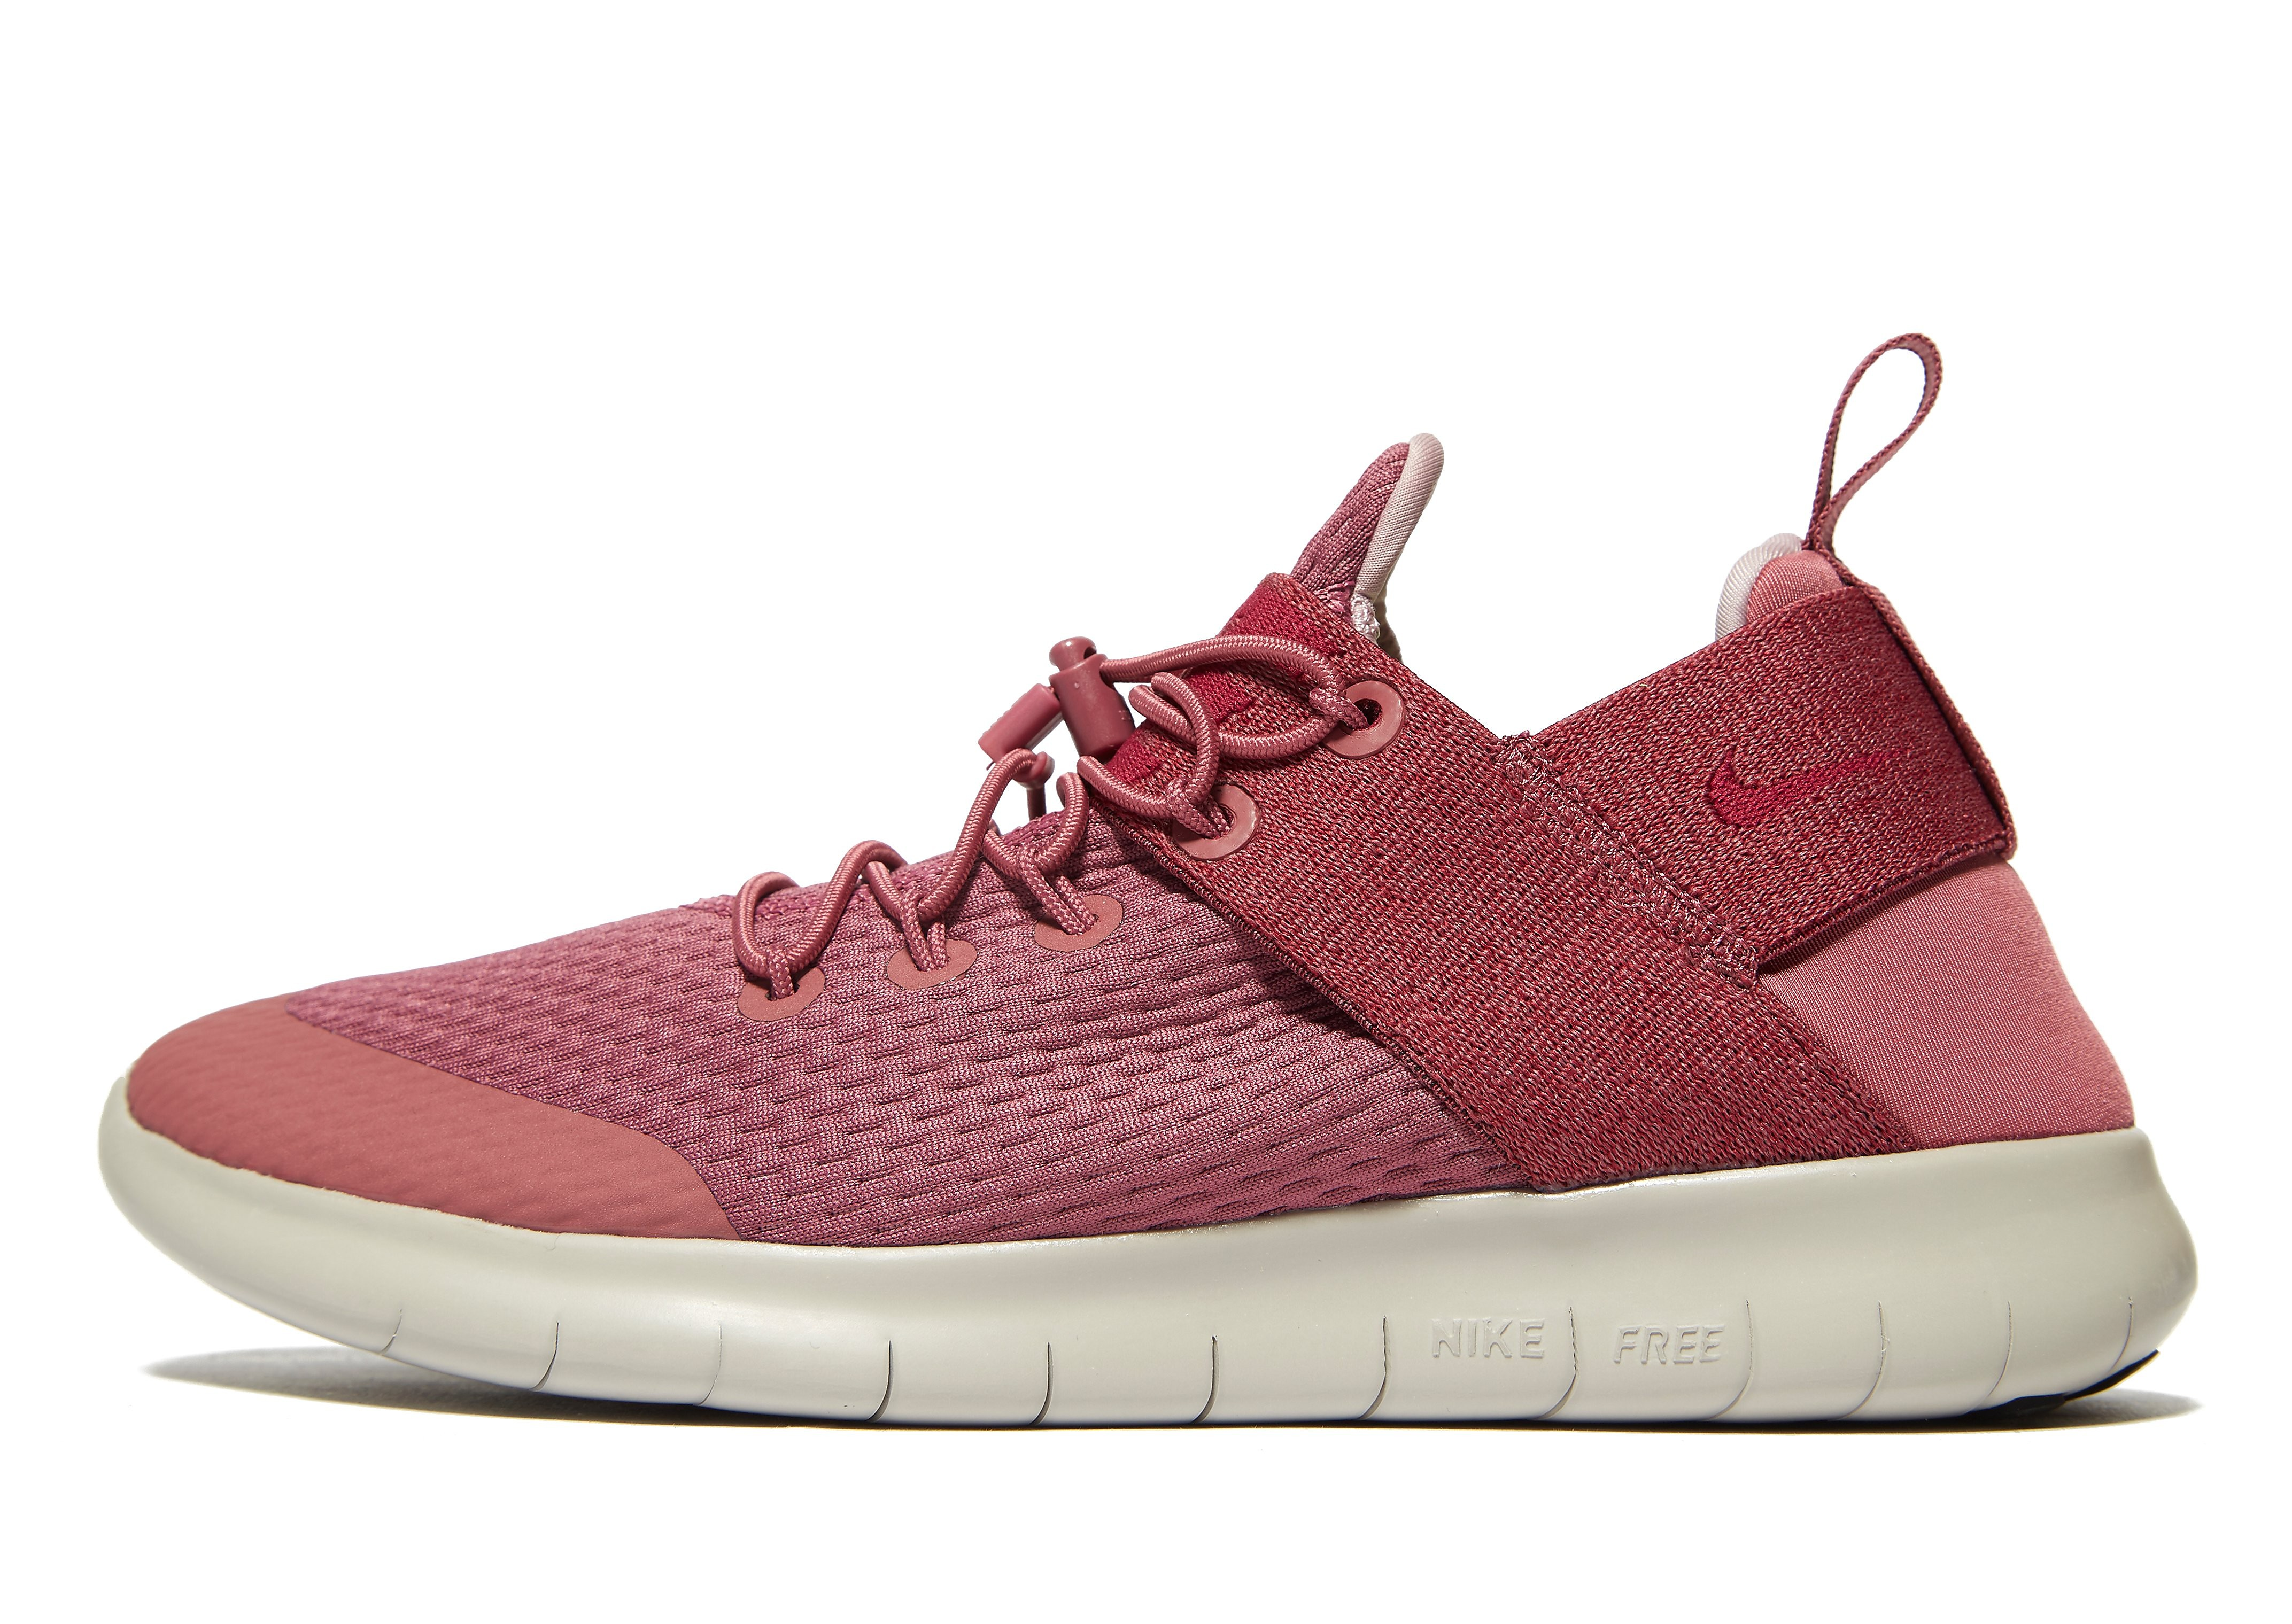 Nike Free Run Commuter 2 Women's